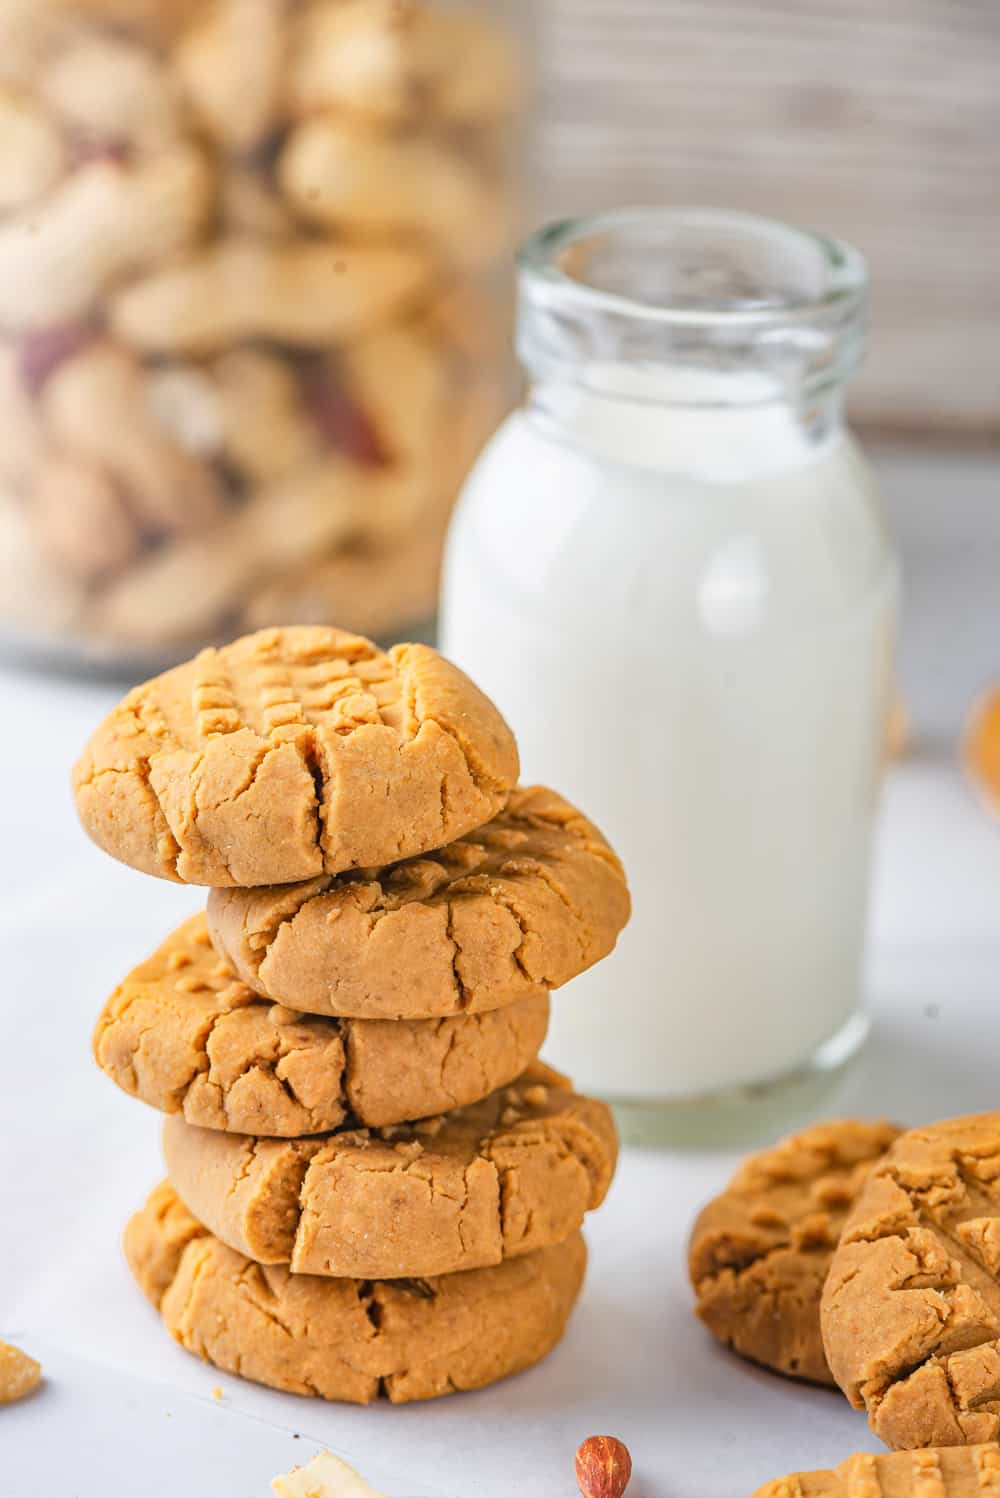 An offset stack of five vegan peanut butter cookies. There are two cookies overlapping each other to the right of the stack of cookies. A tall glass jar of milk is set behind the stack of cookies. A glass jar of peanuts is in the back behind everything. Everything is set on a white counter.